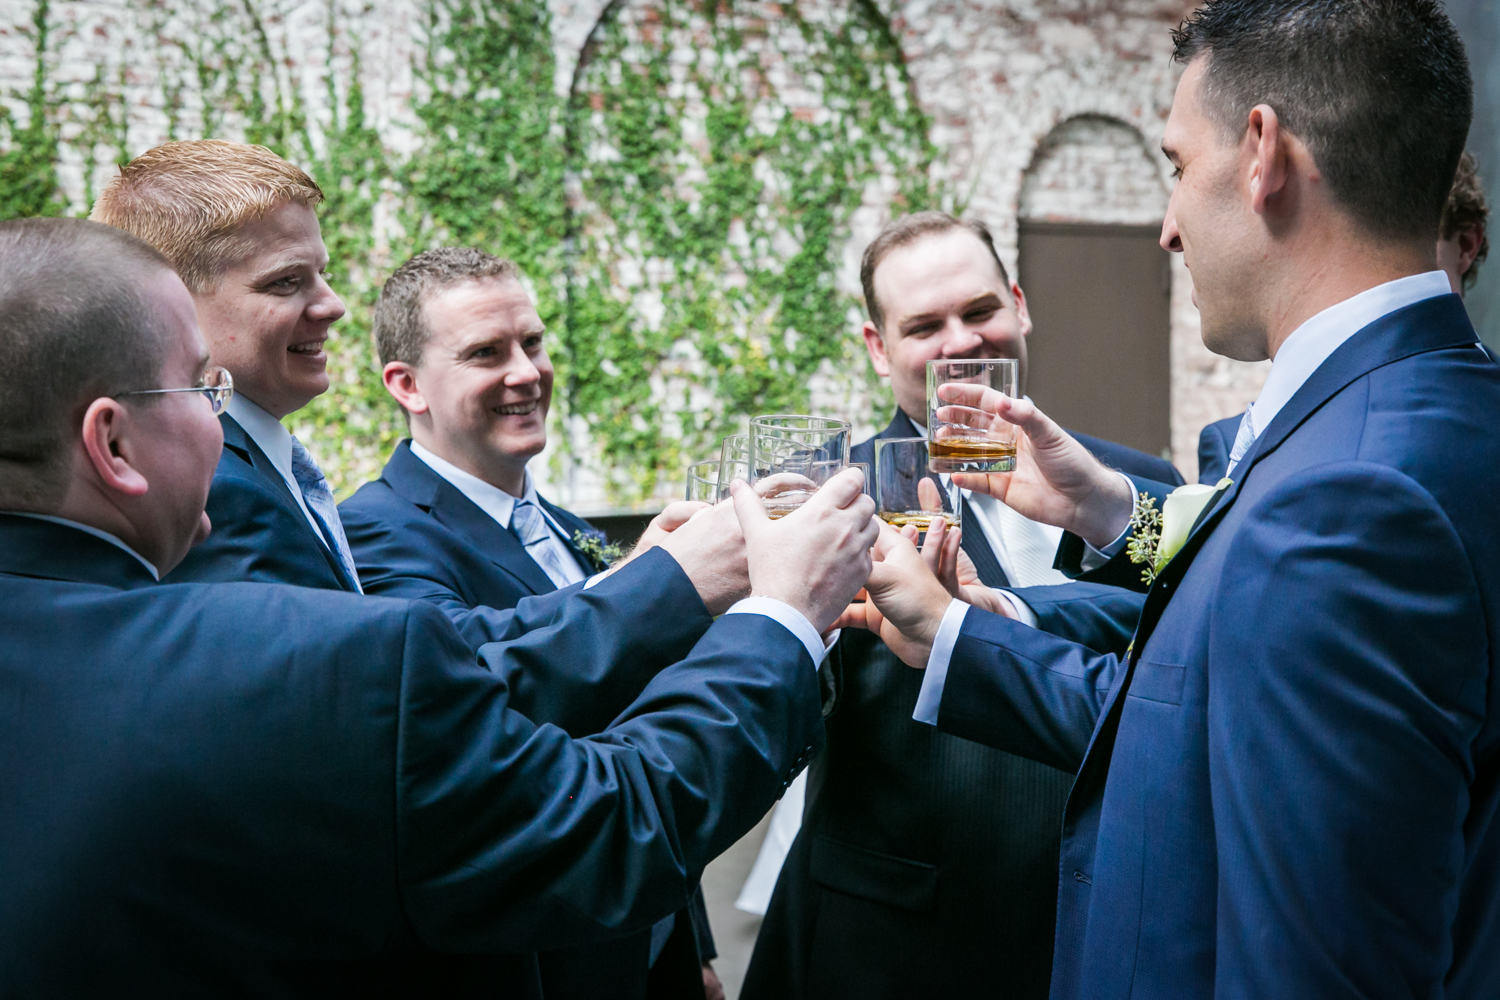 Groom and groomsmen cheering glasses for an article on how to become a wedding officiant in NYC